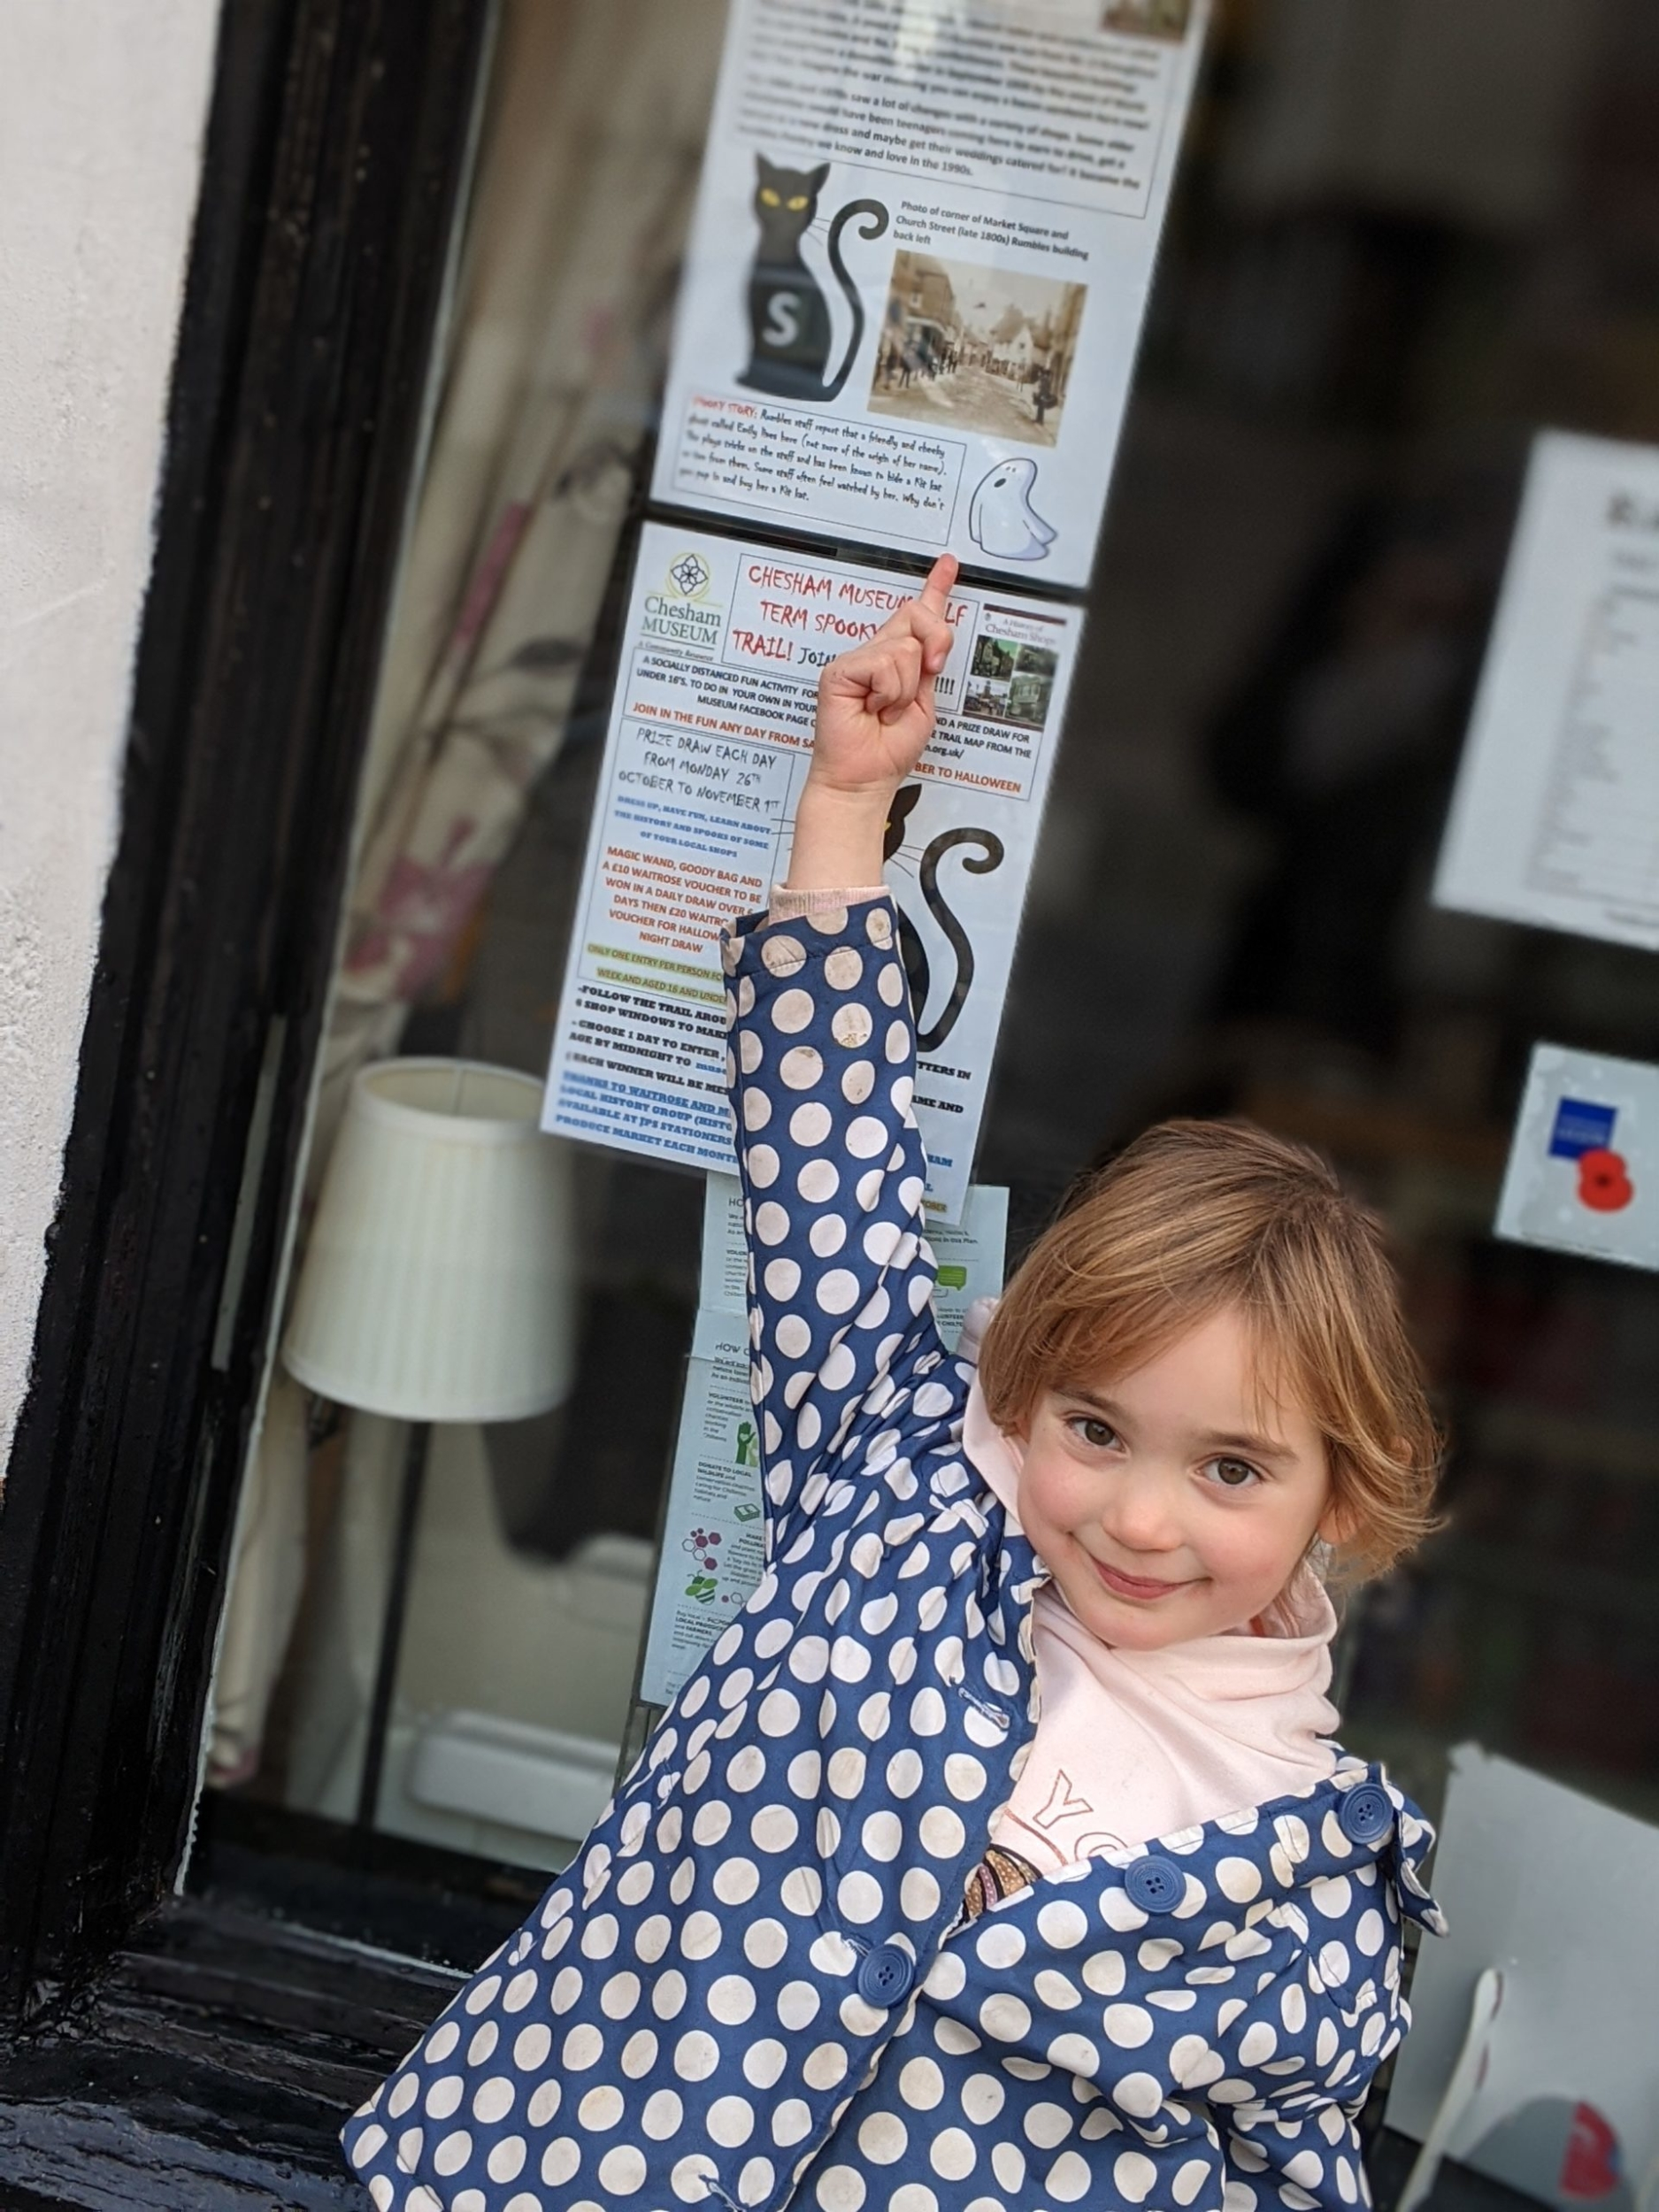 Ellie pointing at poster in shop window